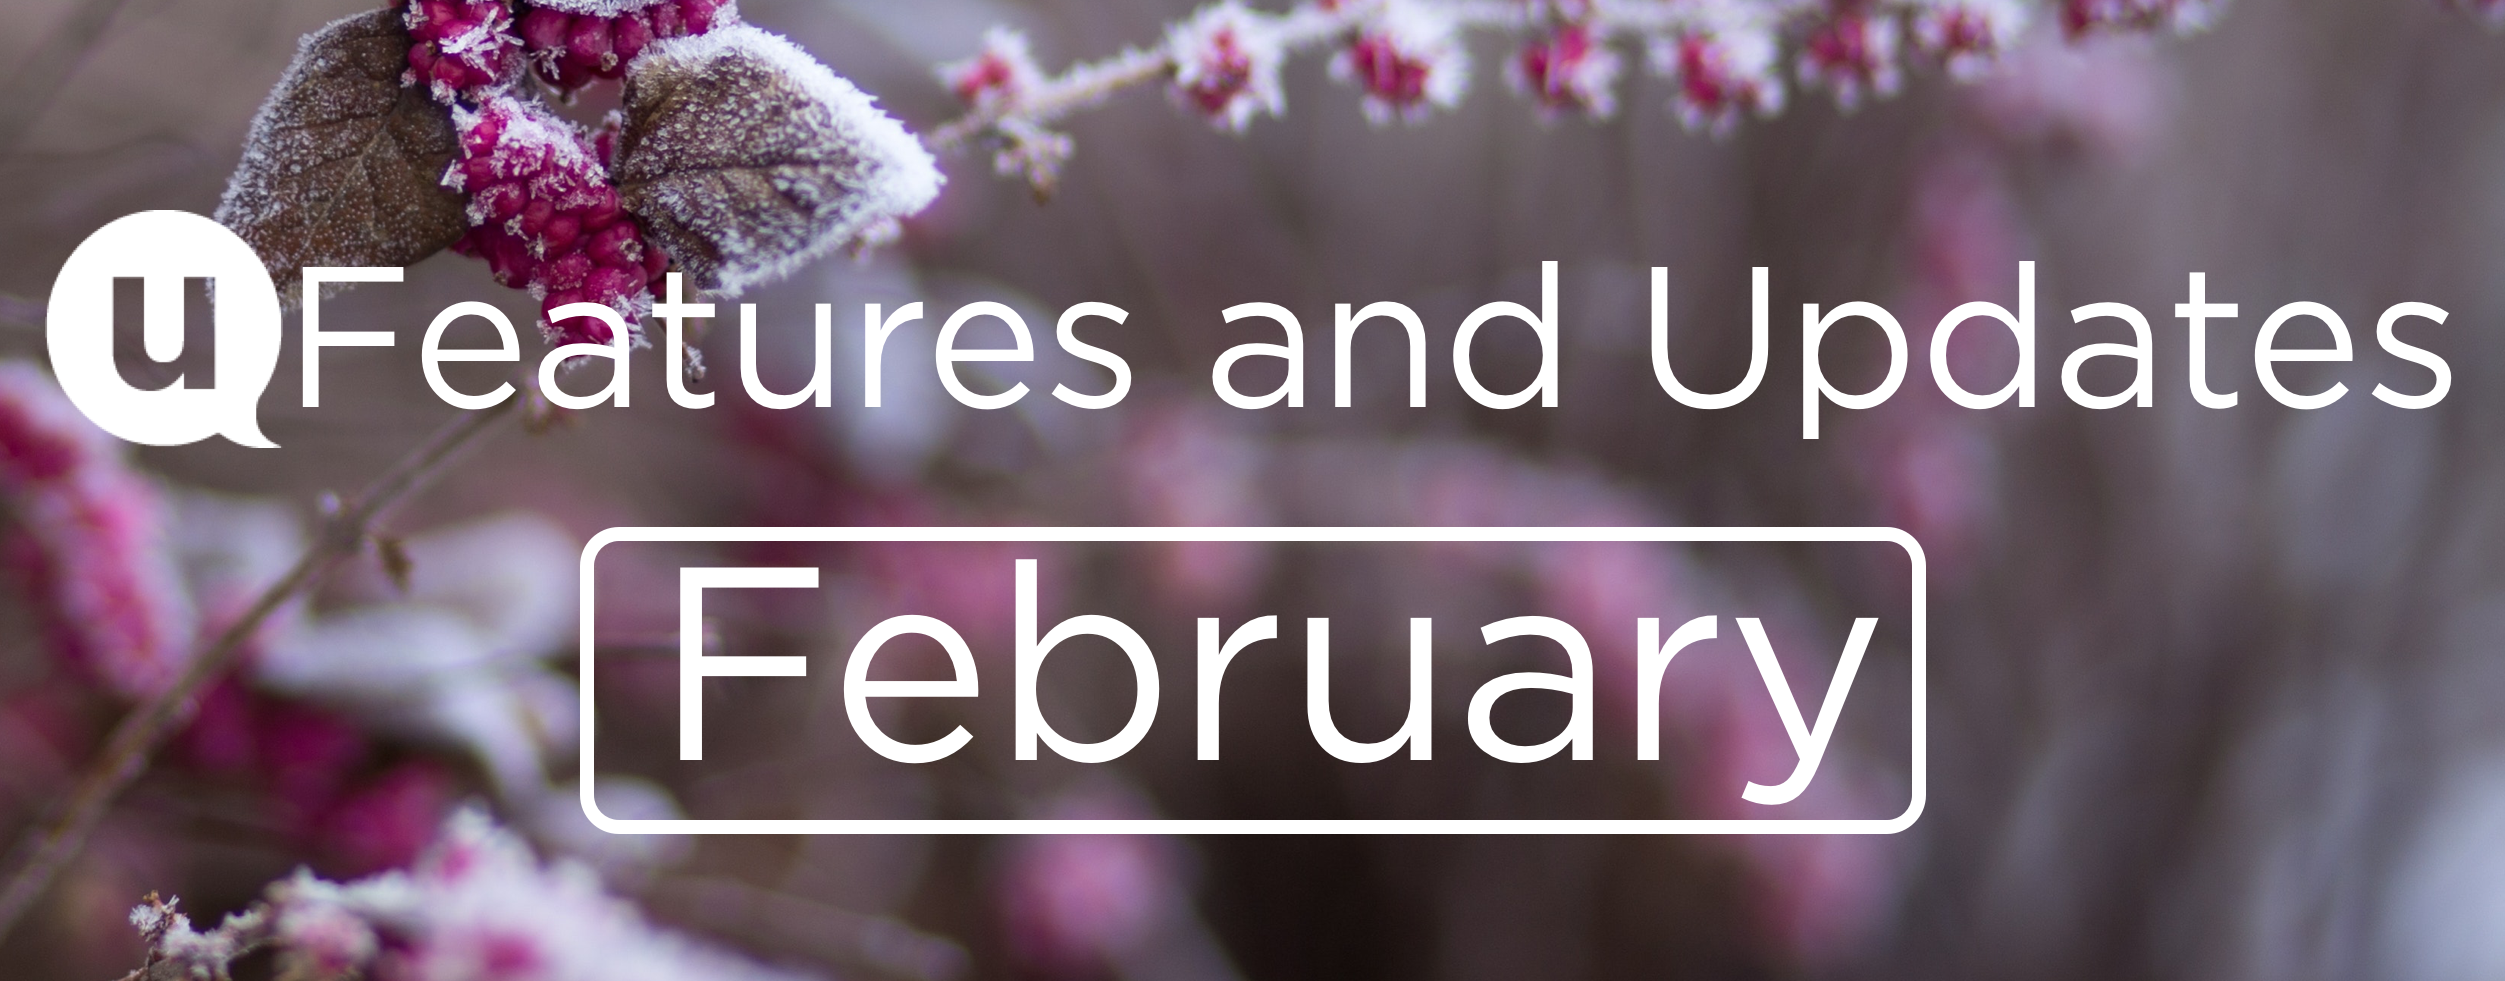 February Features and Updates Header